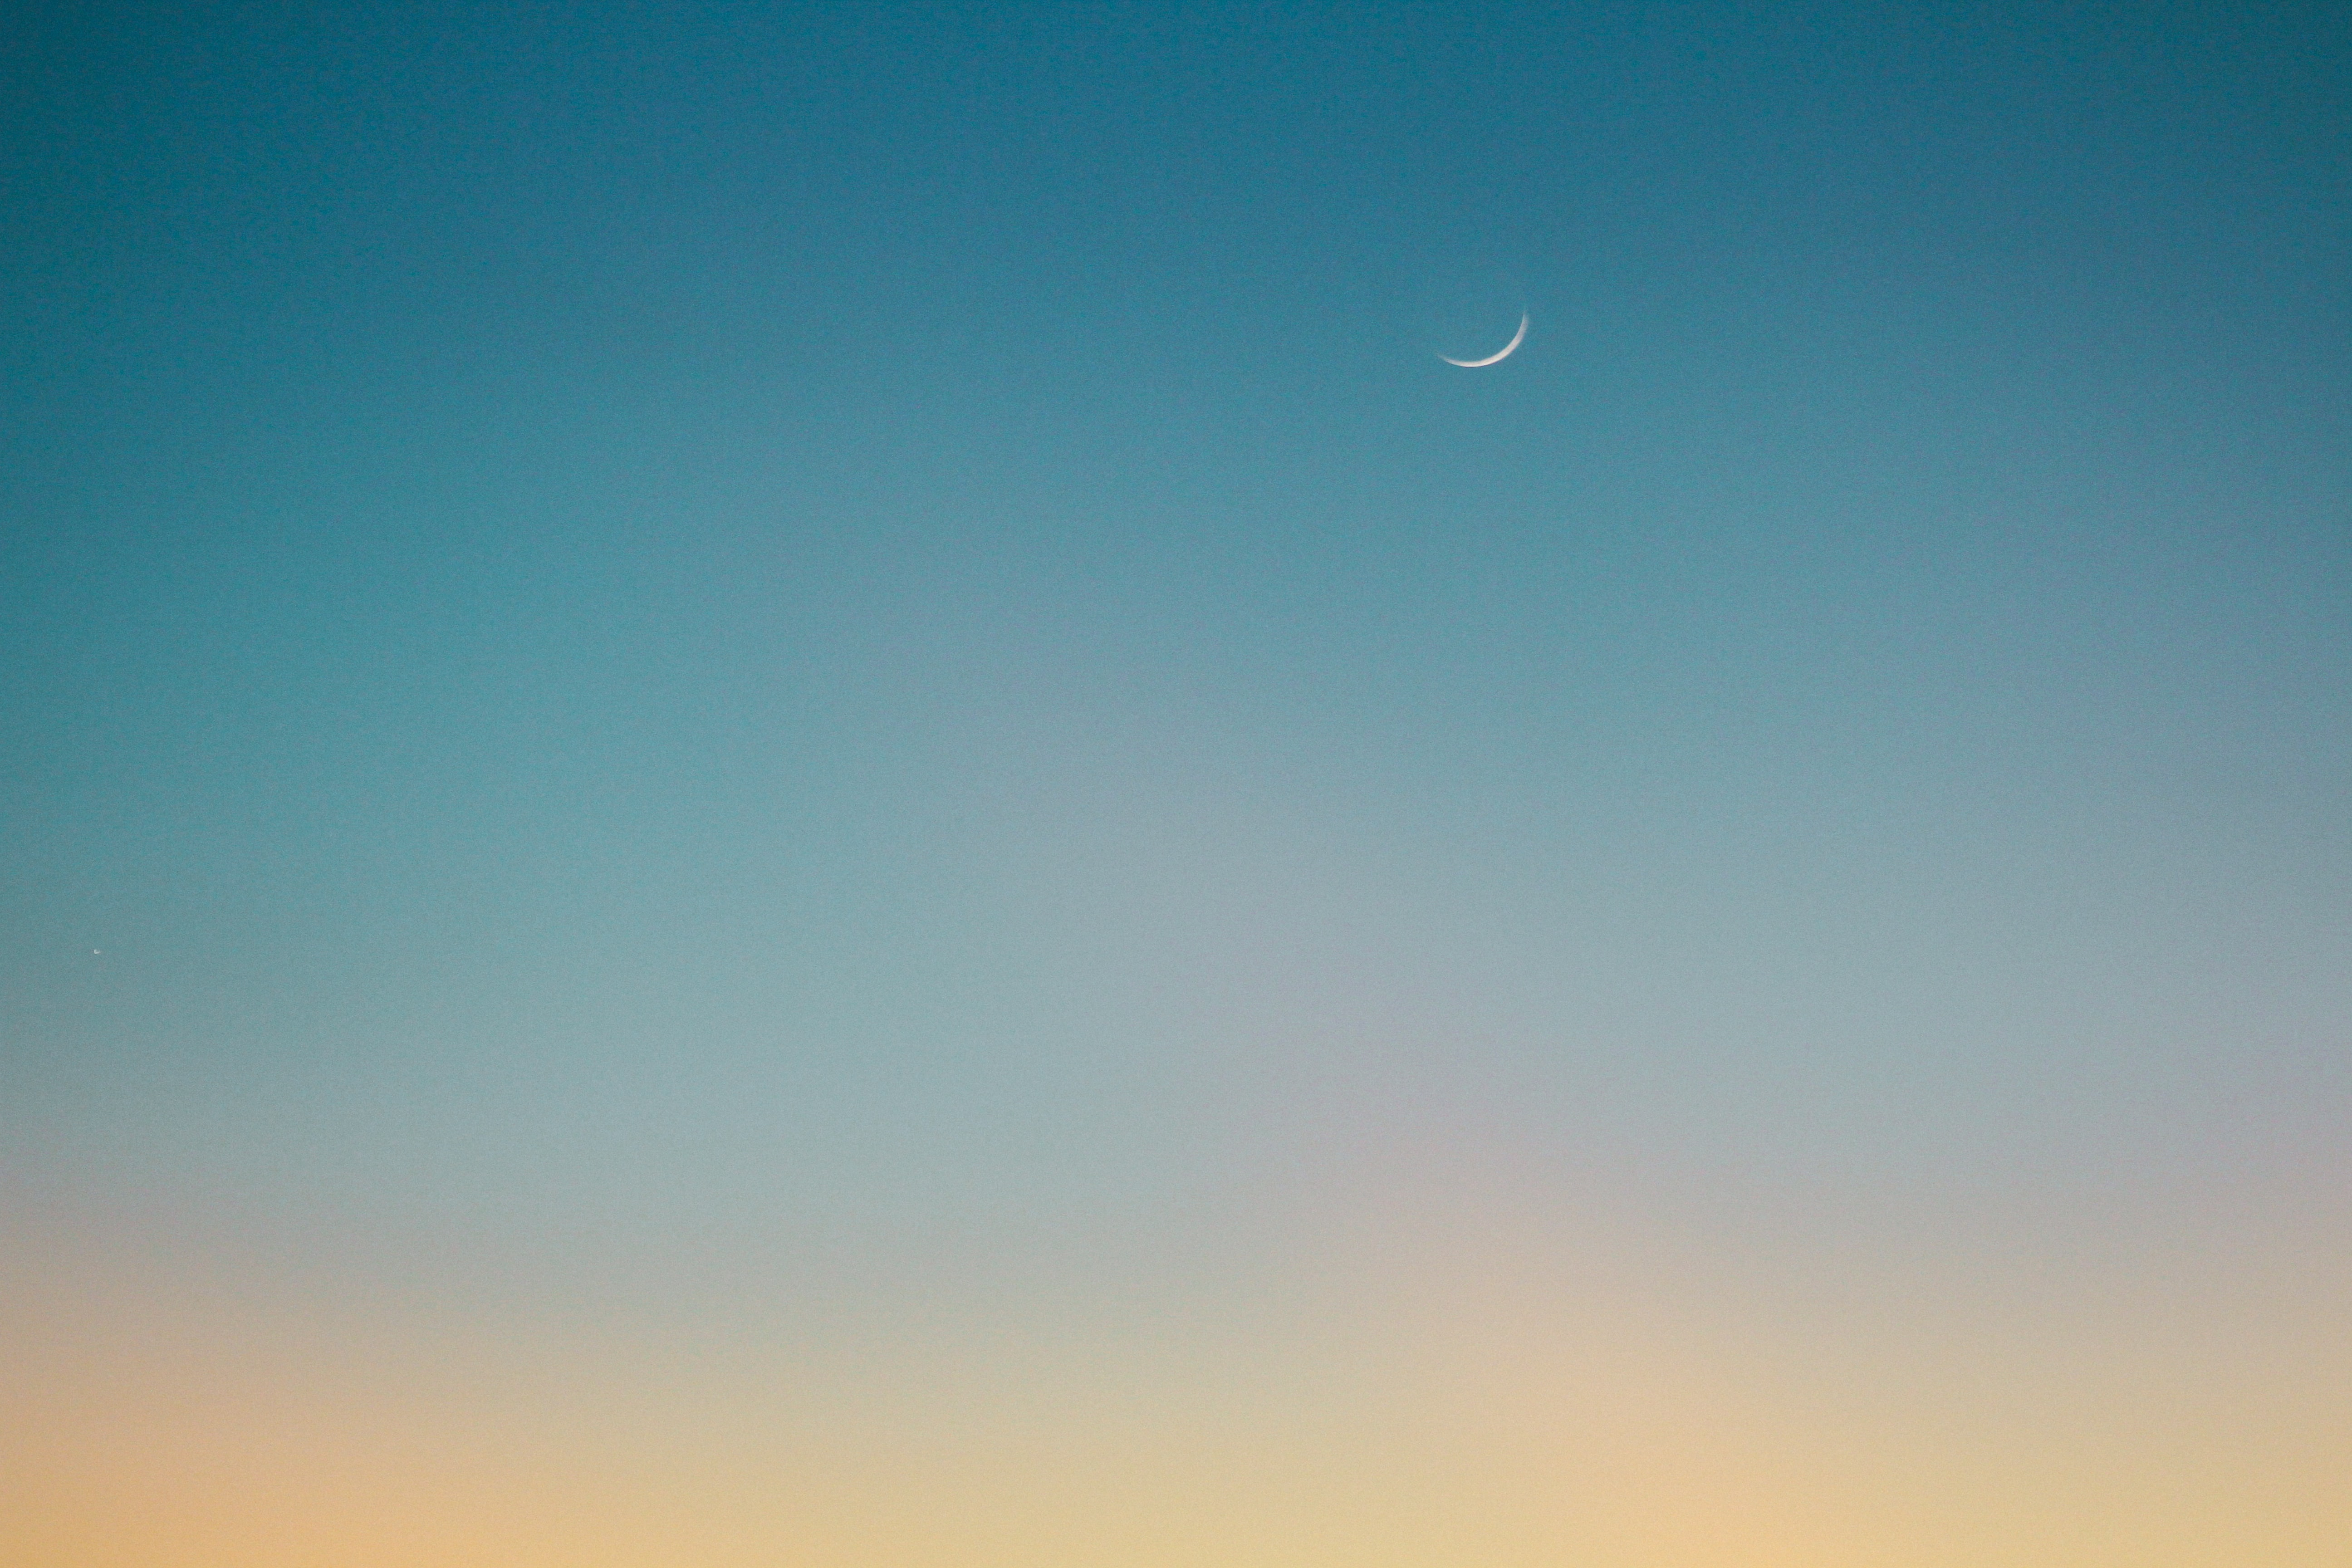 crescent moon on blue sky